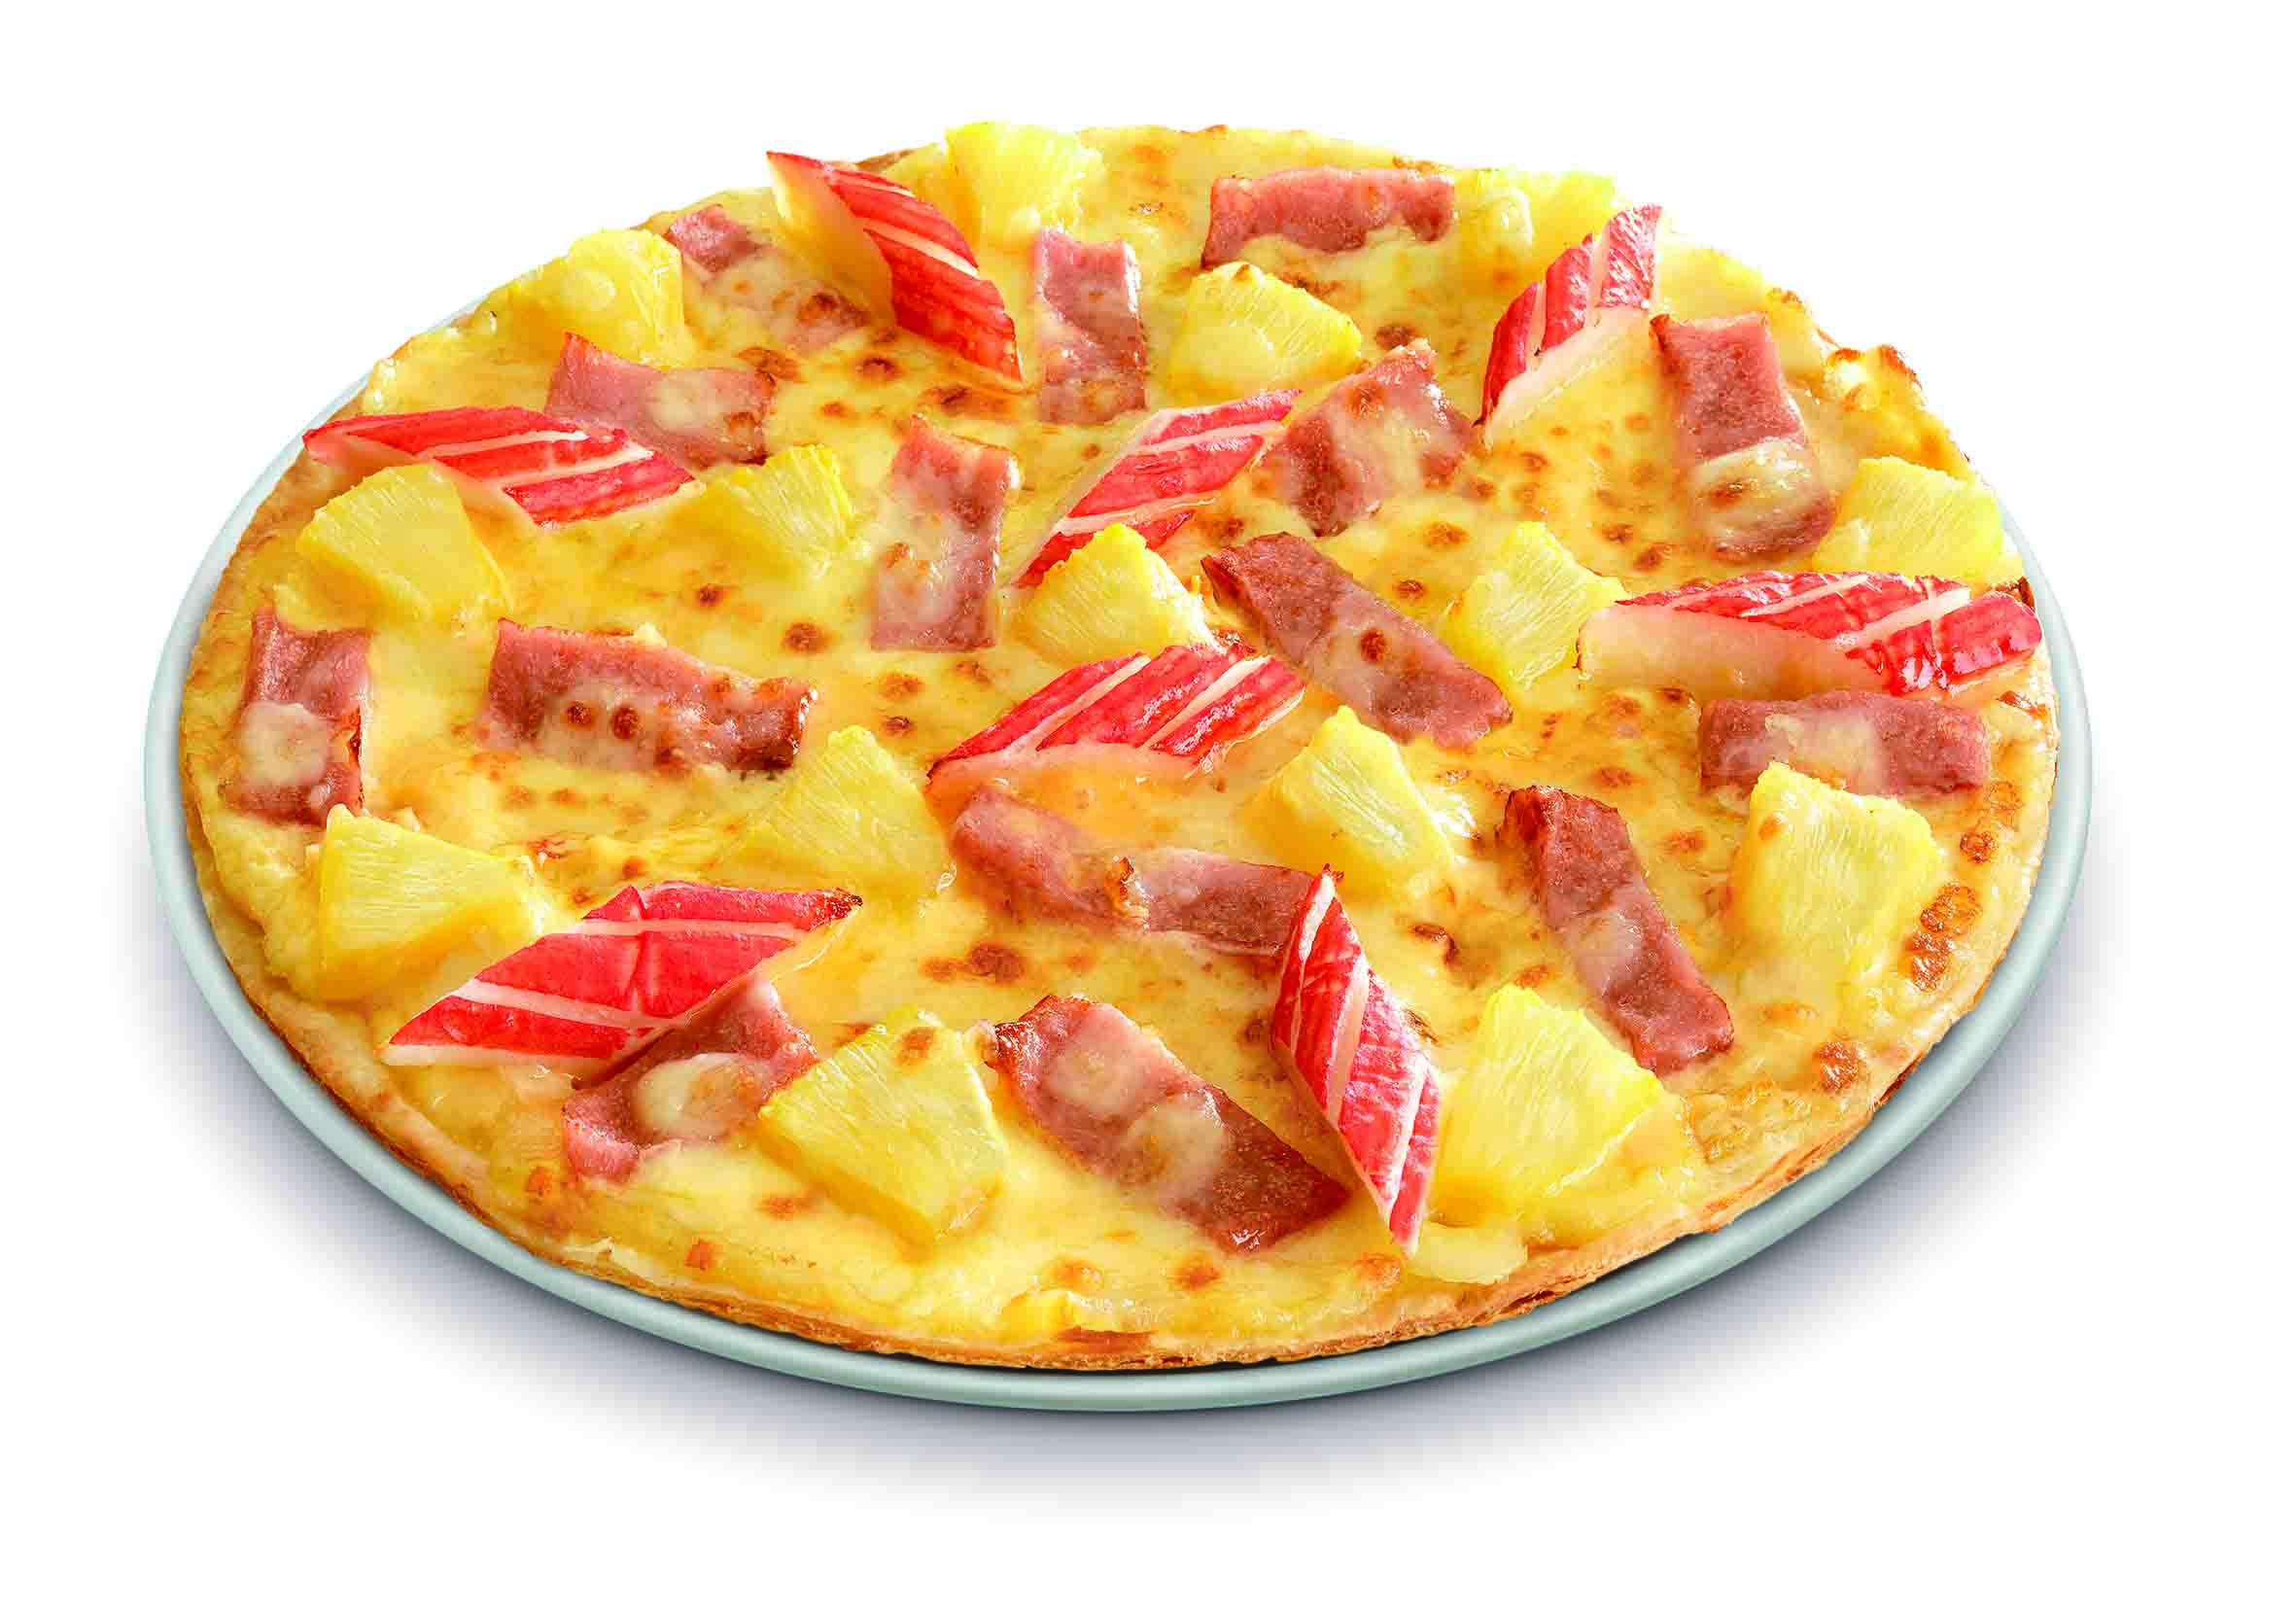 Ham & Crab Sticks Image